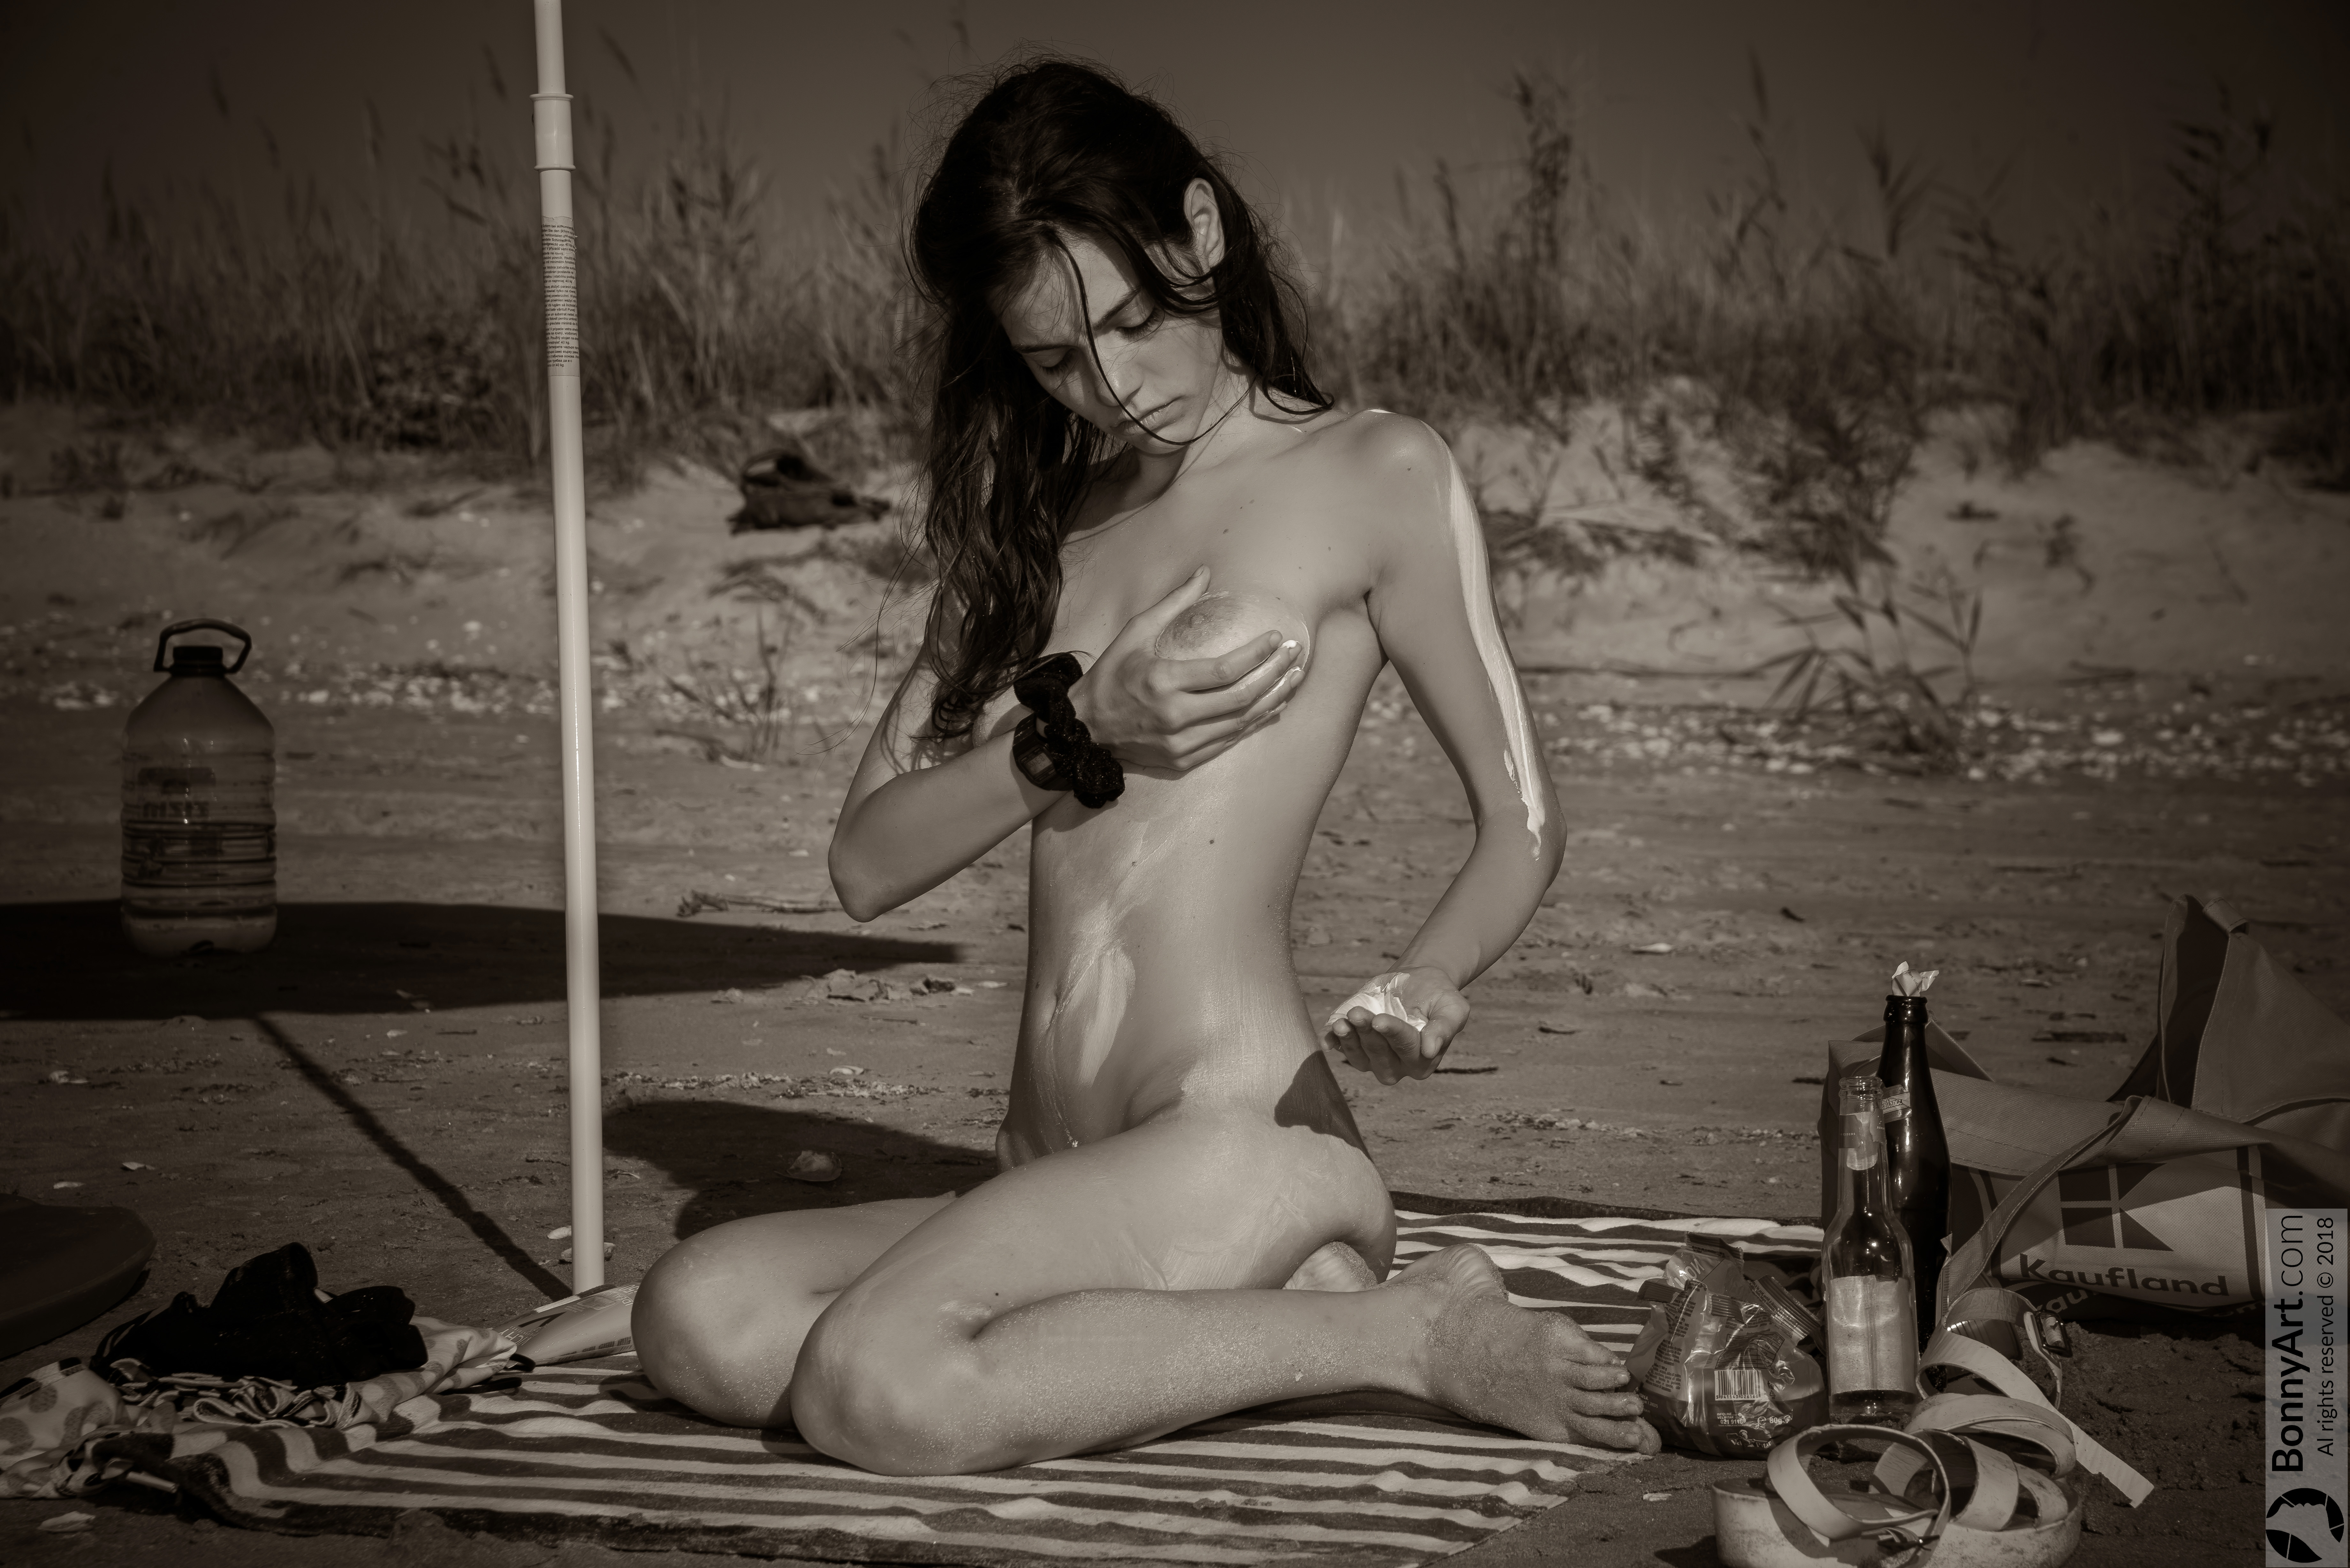 Vintage Nudist Beautiful Girl on Beach Using Sunscreen HD